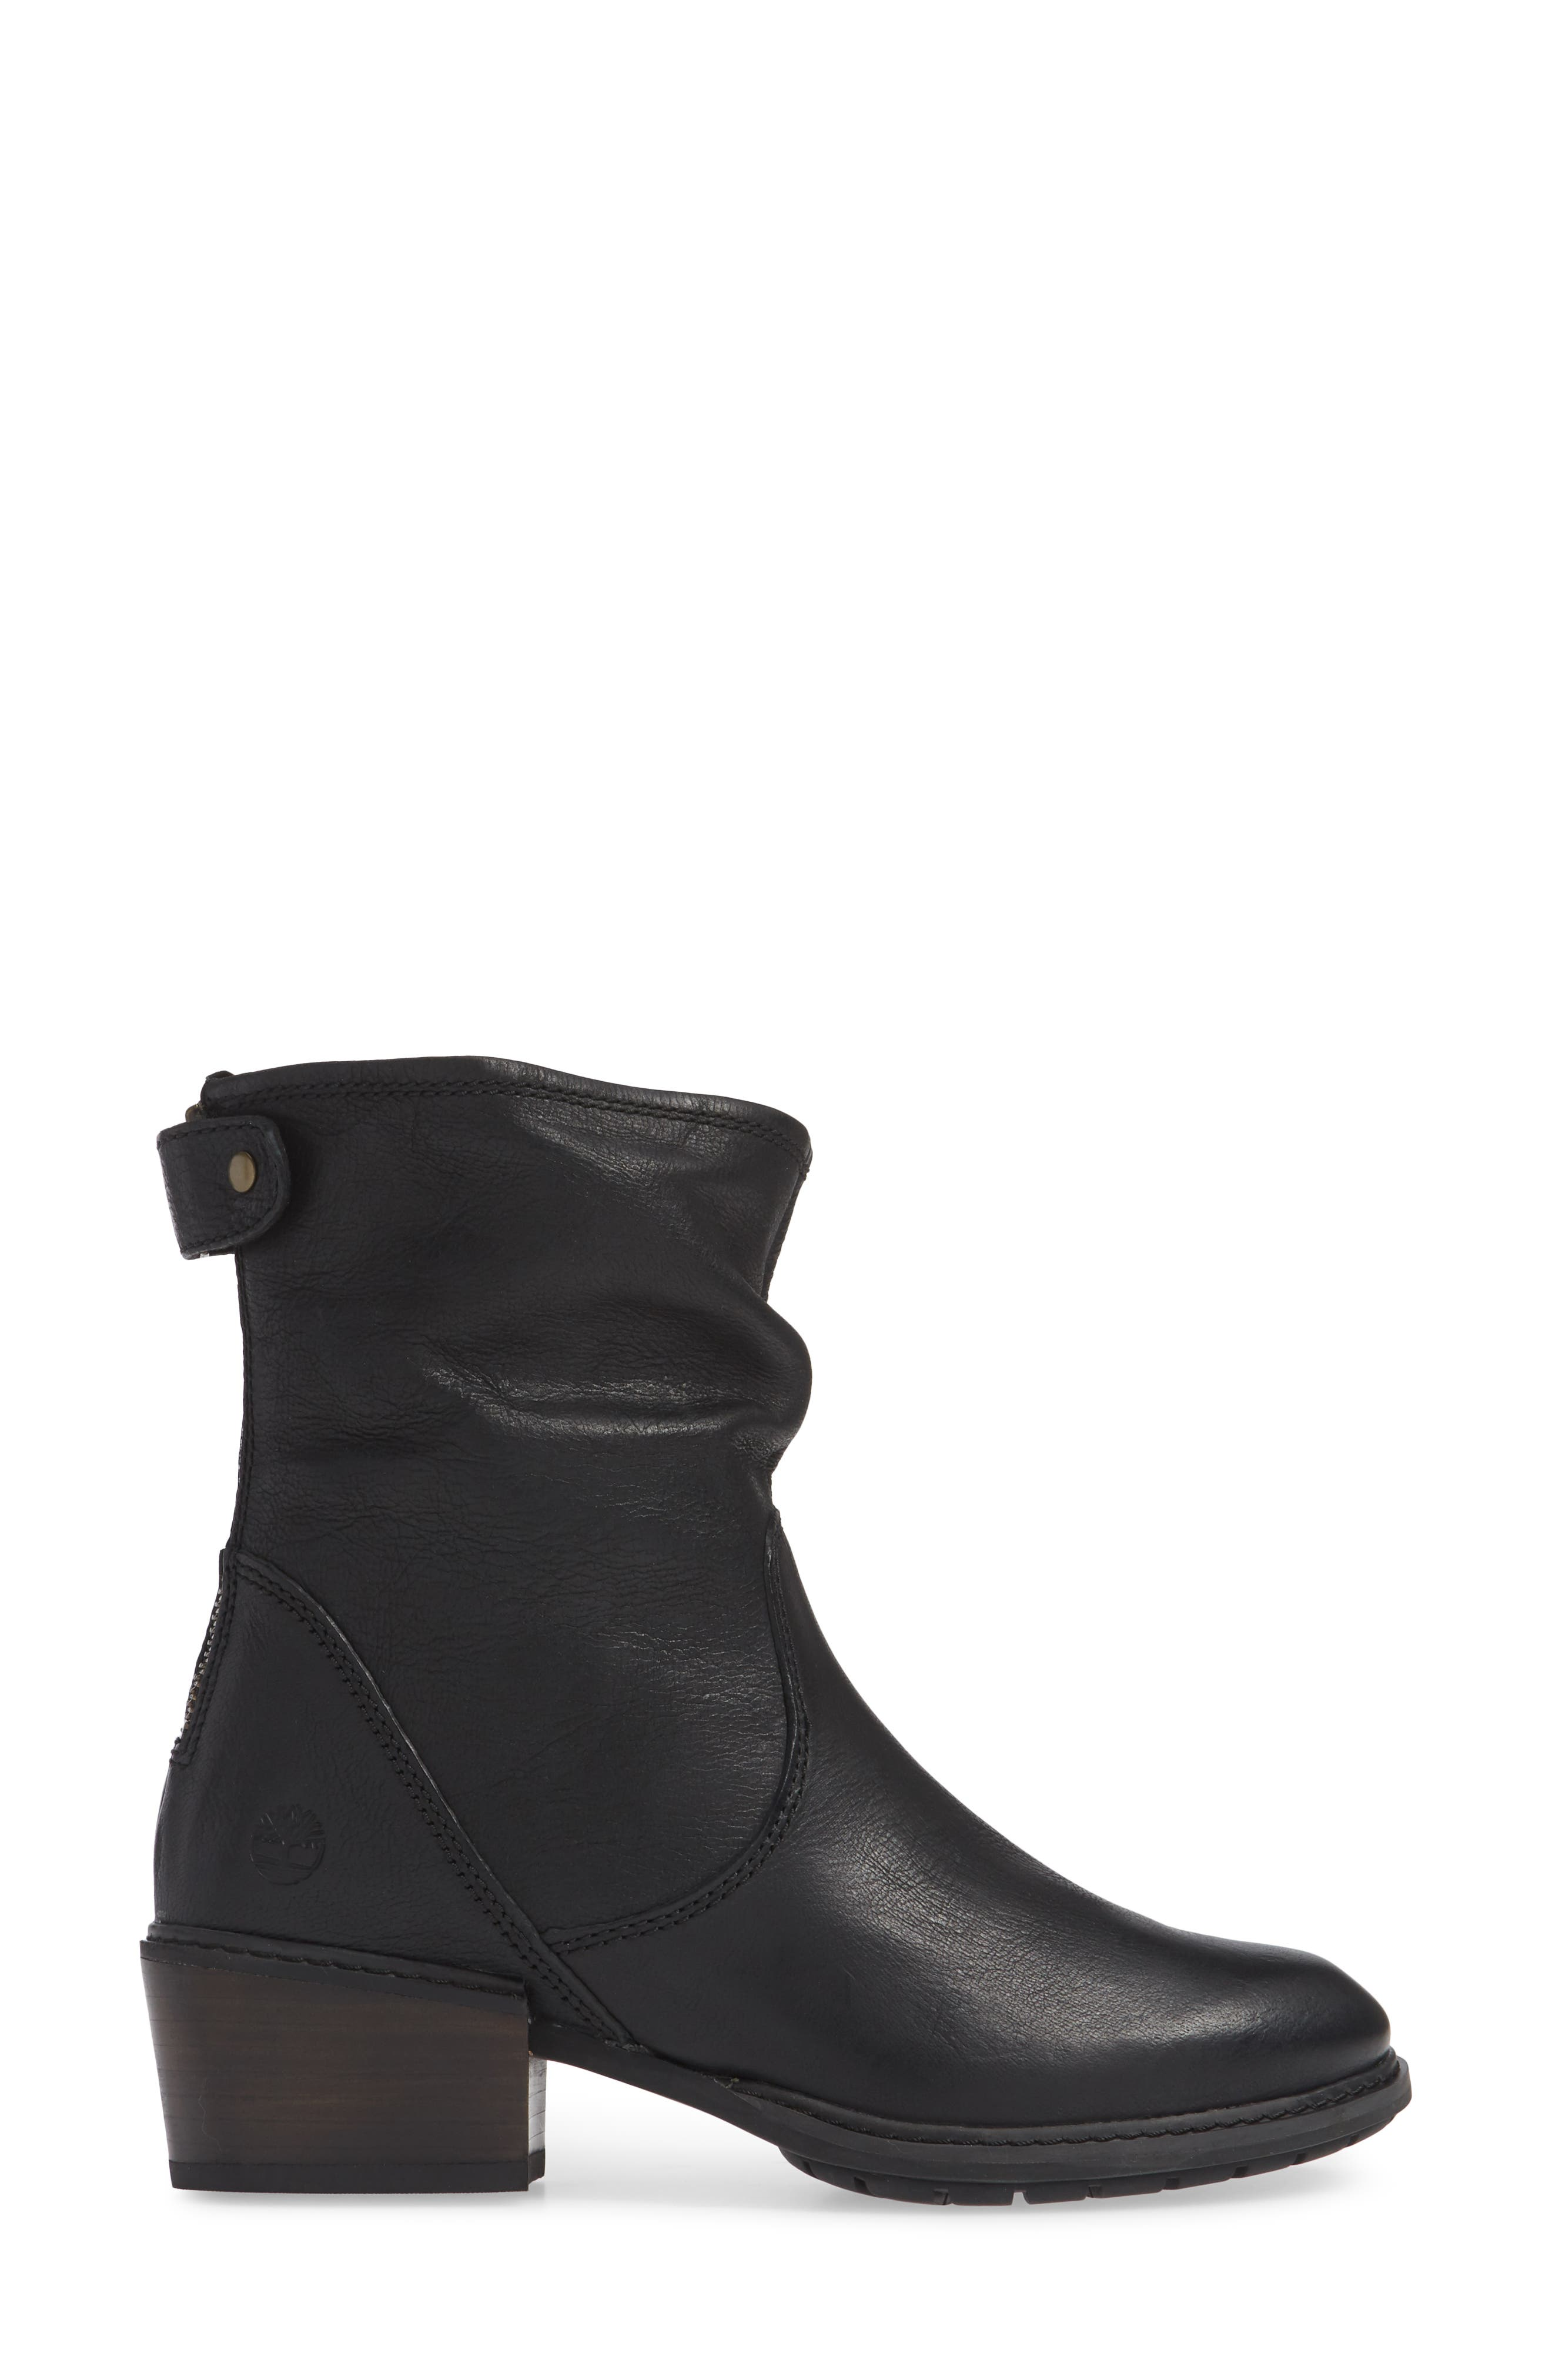 Sutherlin Bay Water Resistant Bootie,                             Alternate thumbnail 3, color,                             JET BLACK LEATHER